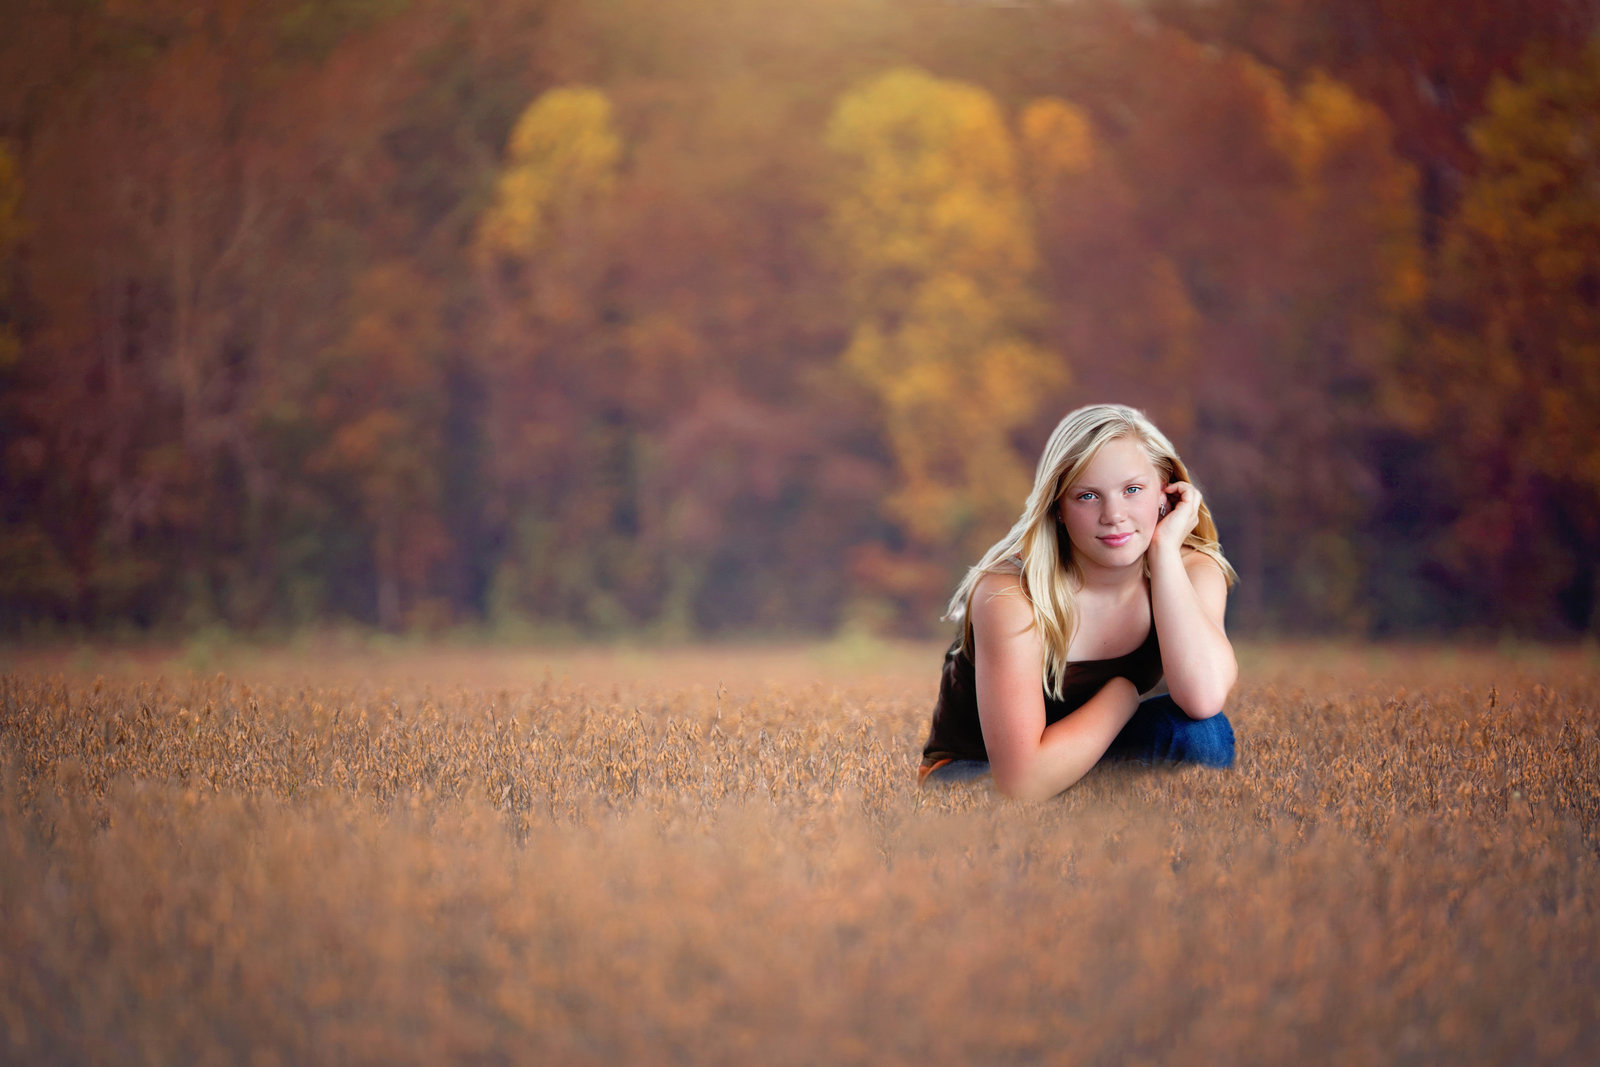 senior-portrait-photos-golden-hour-field